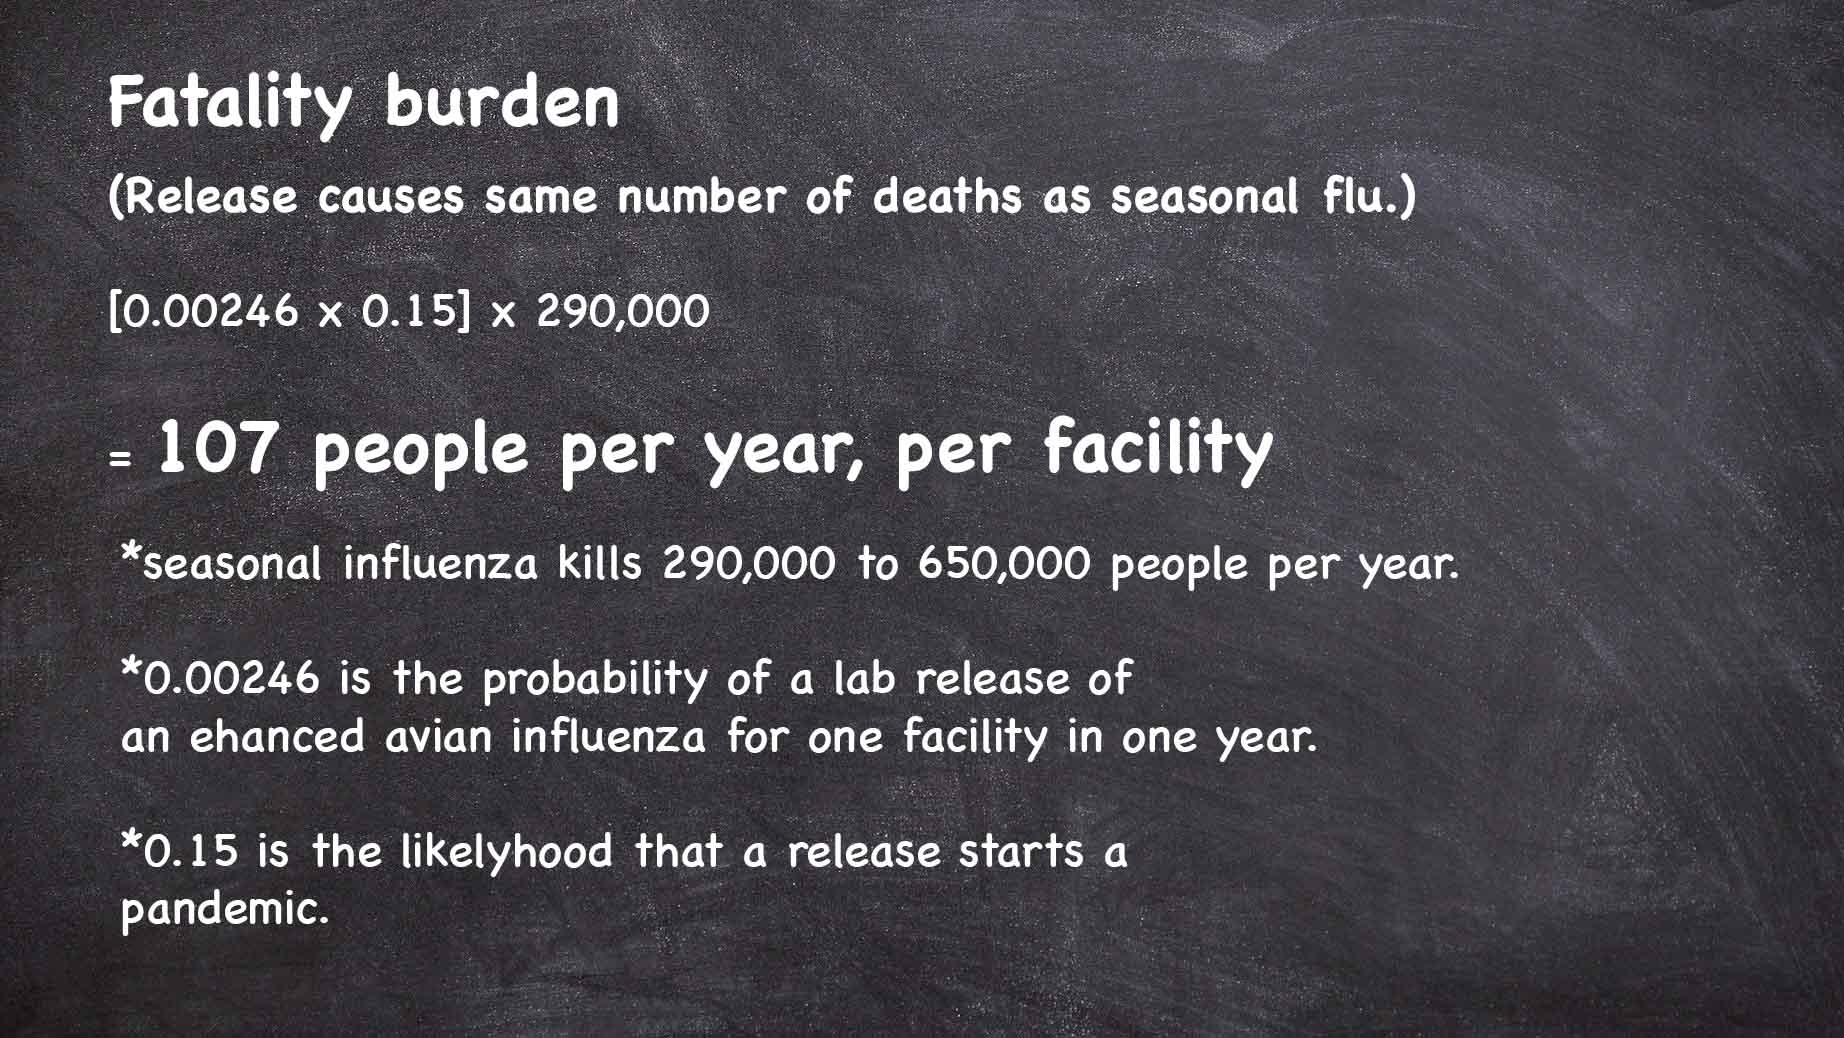 Fatality burden calculation.